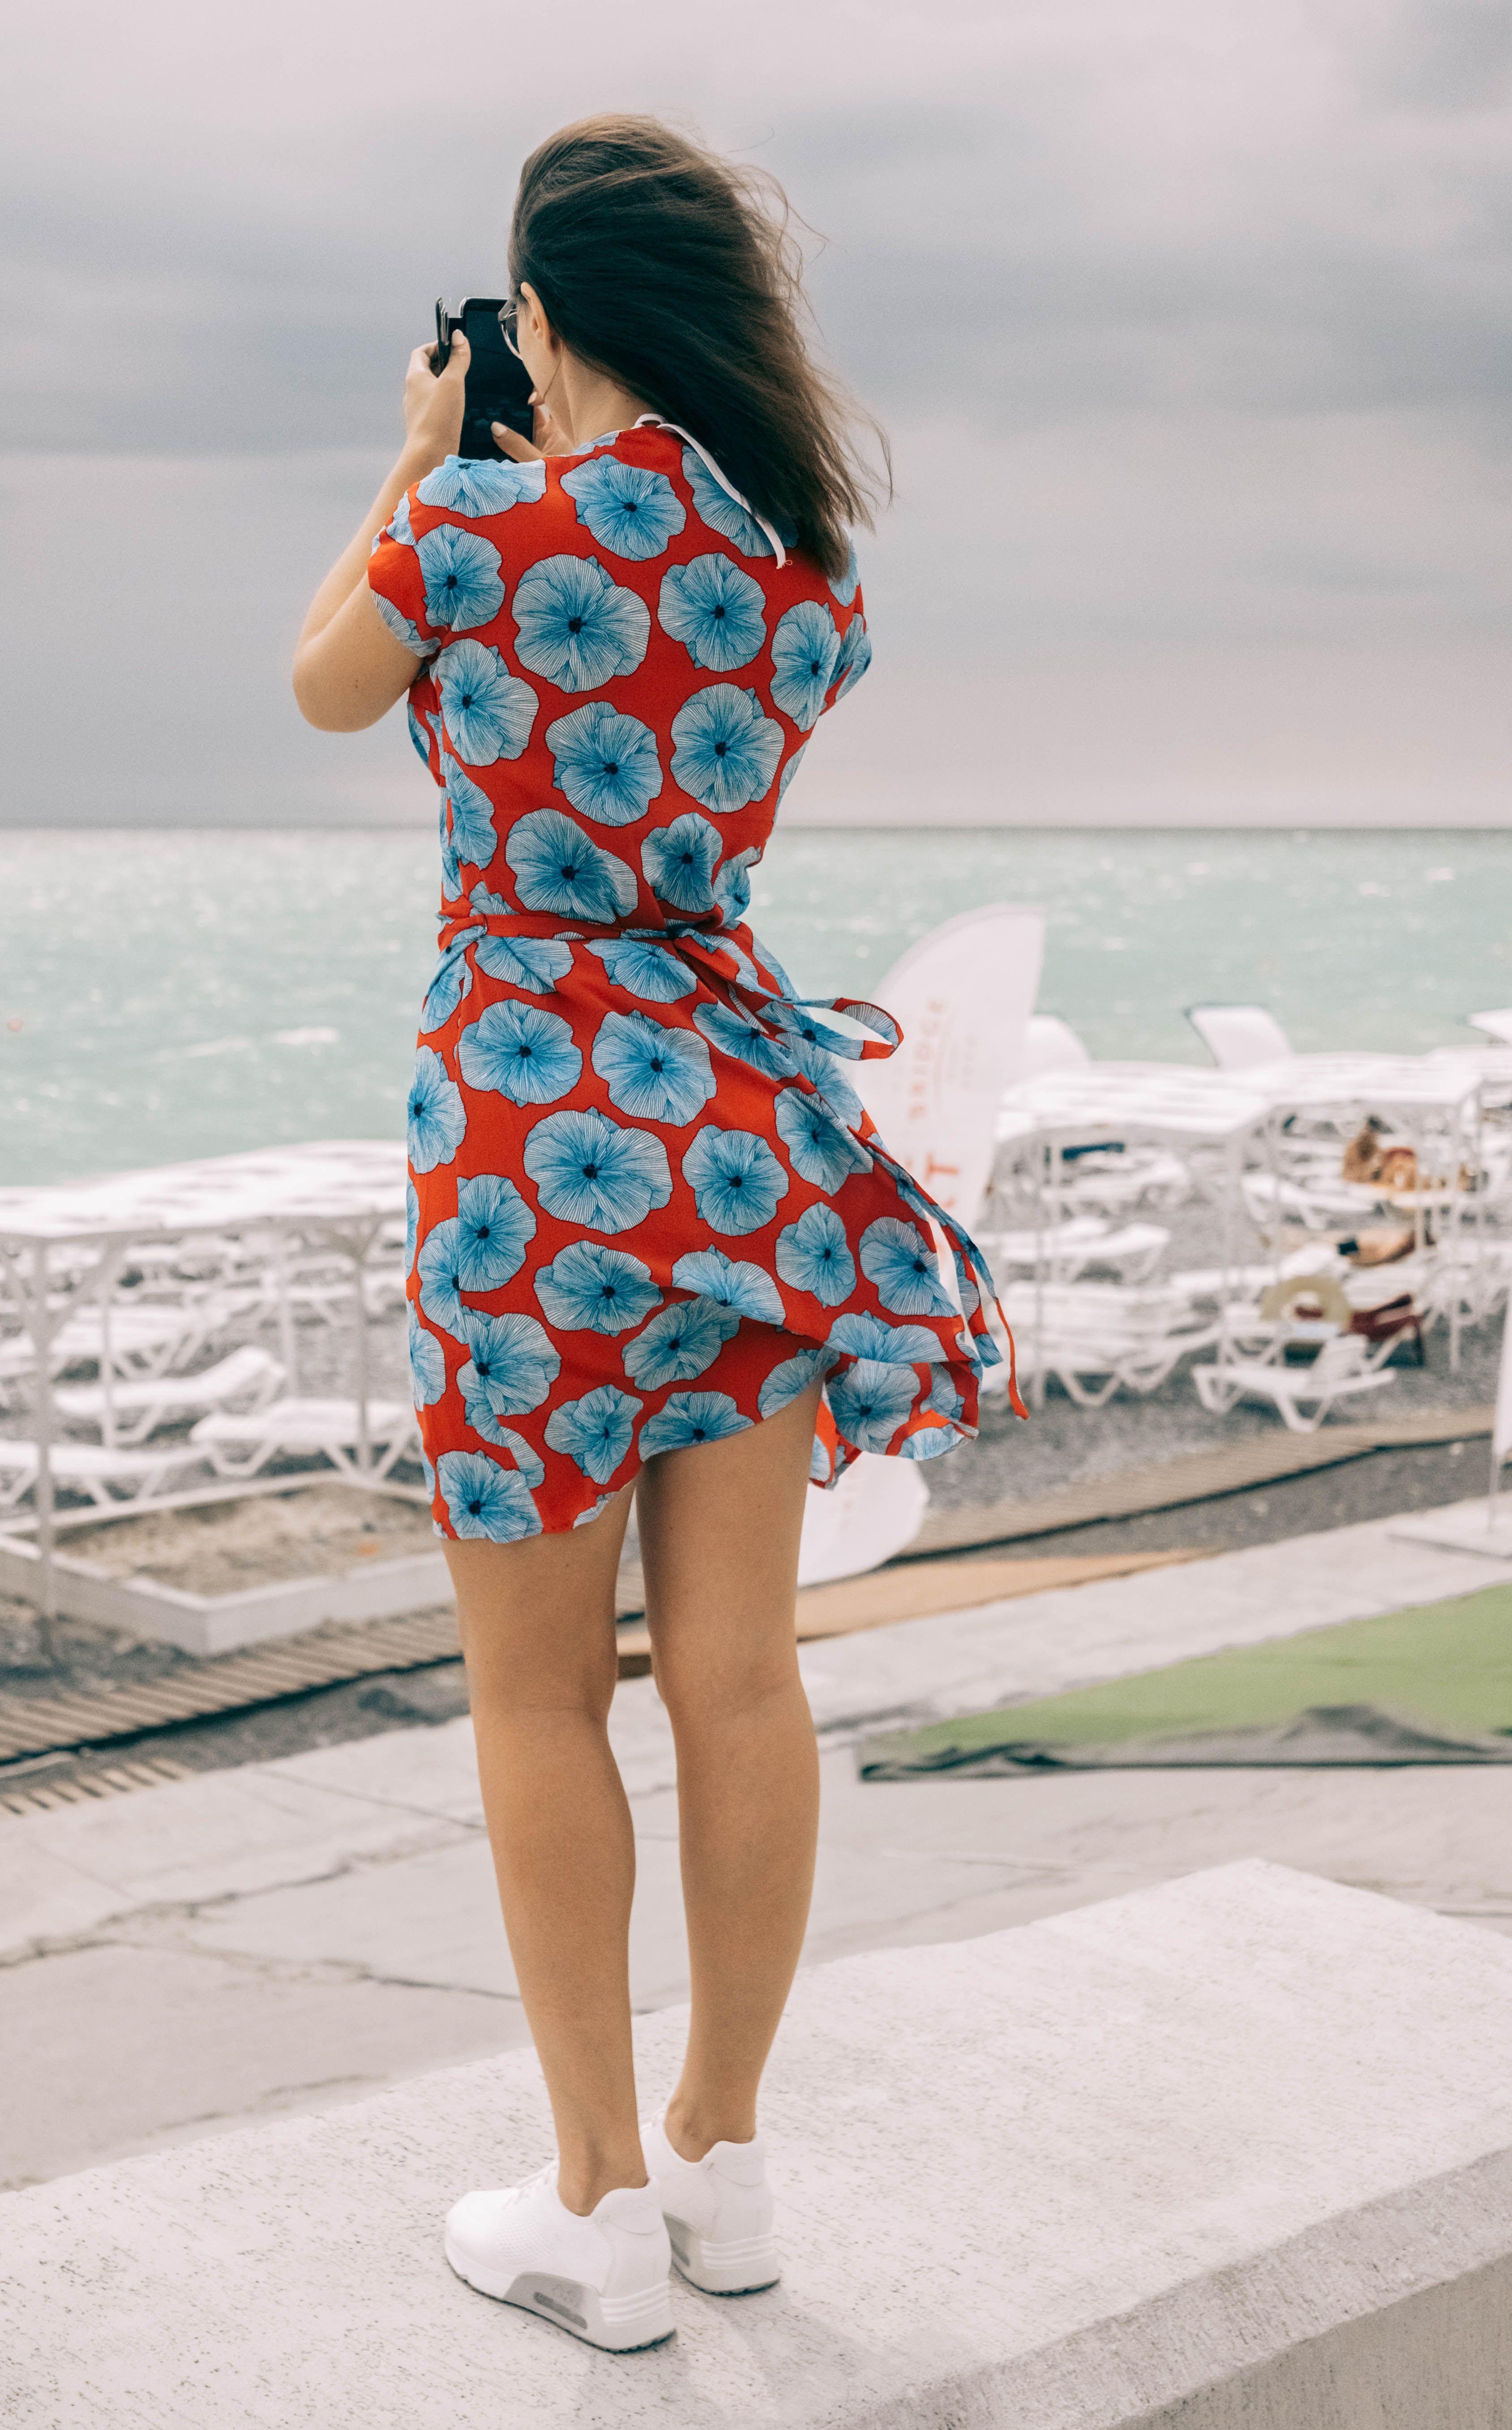 Woman Wearing Maroon And Blue Floral Dress Holding Phone At Daytime